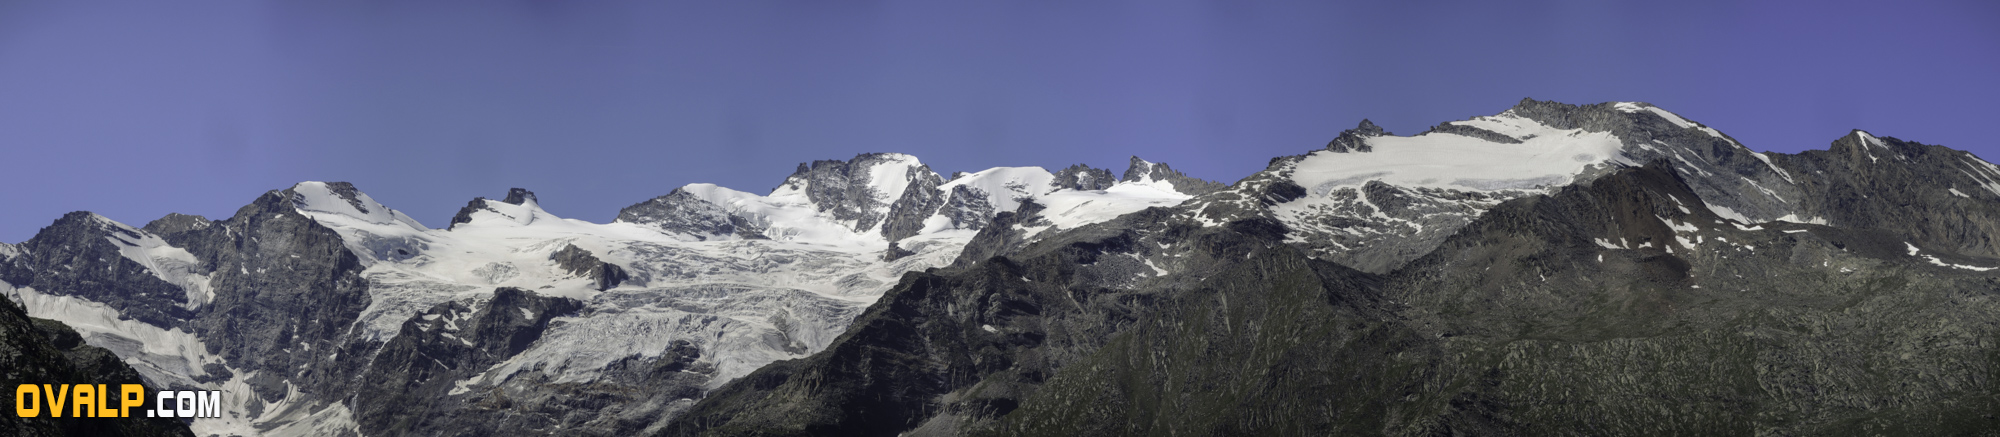 Pano Grand Paradisio (Val d'Aoste)